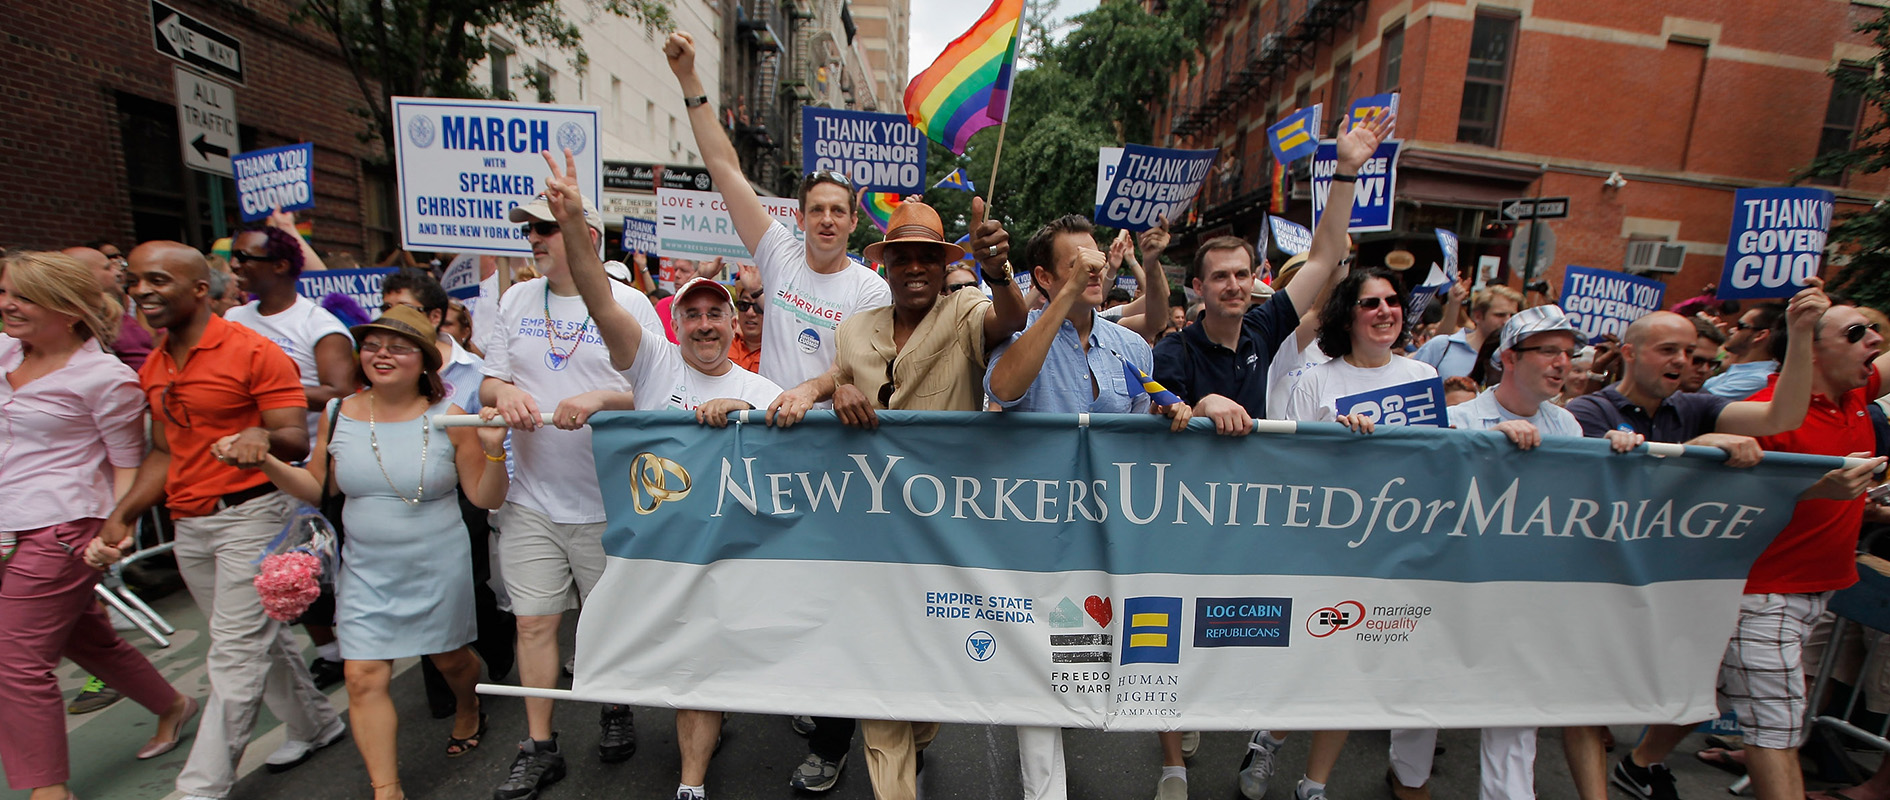 The New Yorkers United for Marriage team celebrating in New York City Pride, 2011